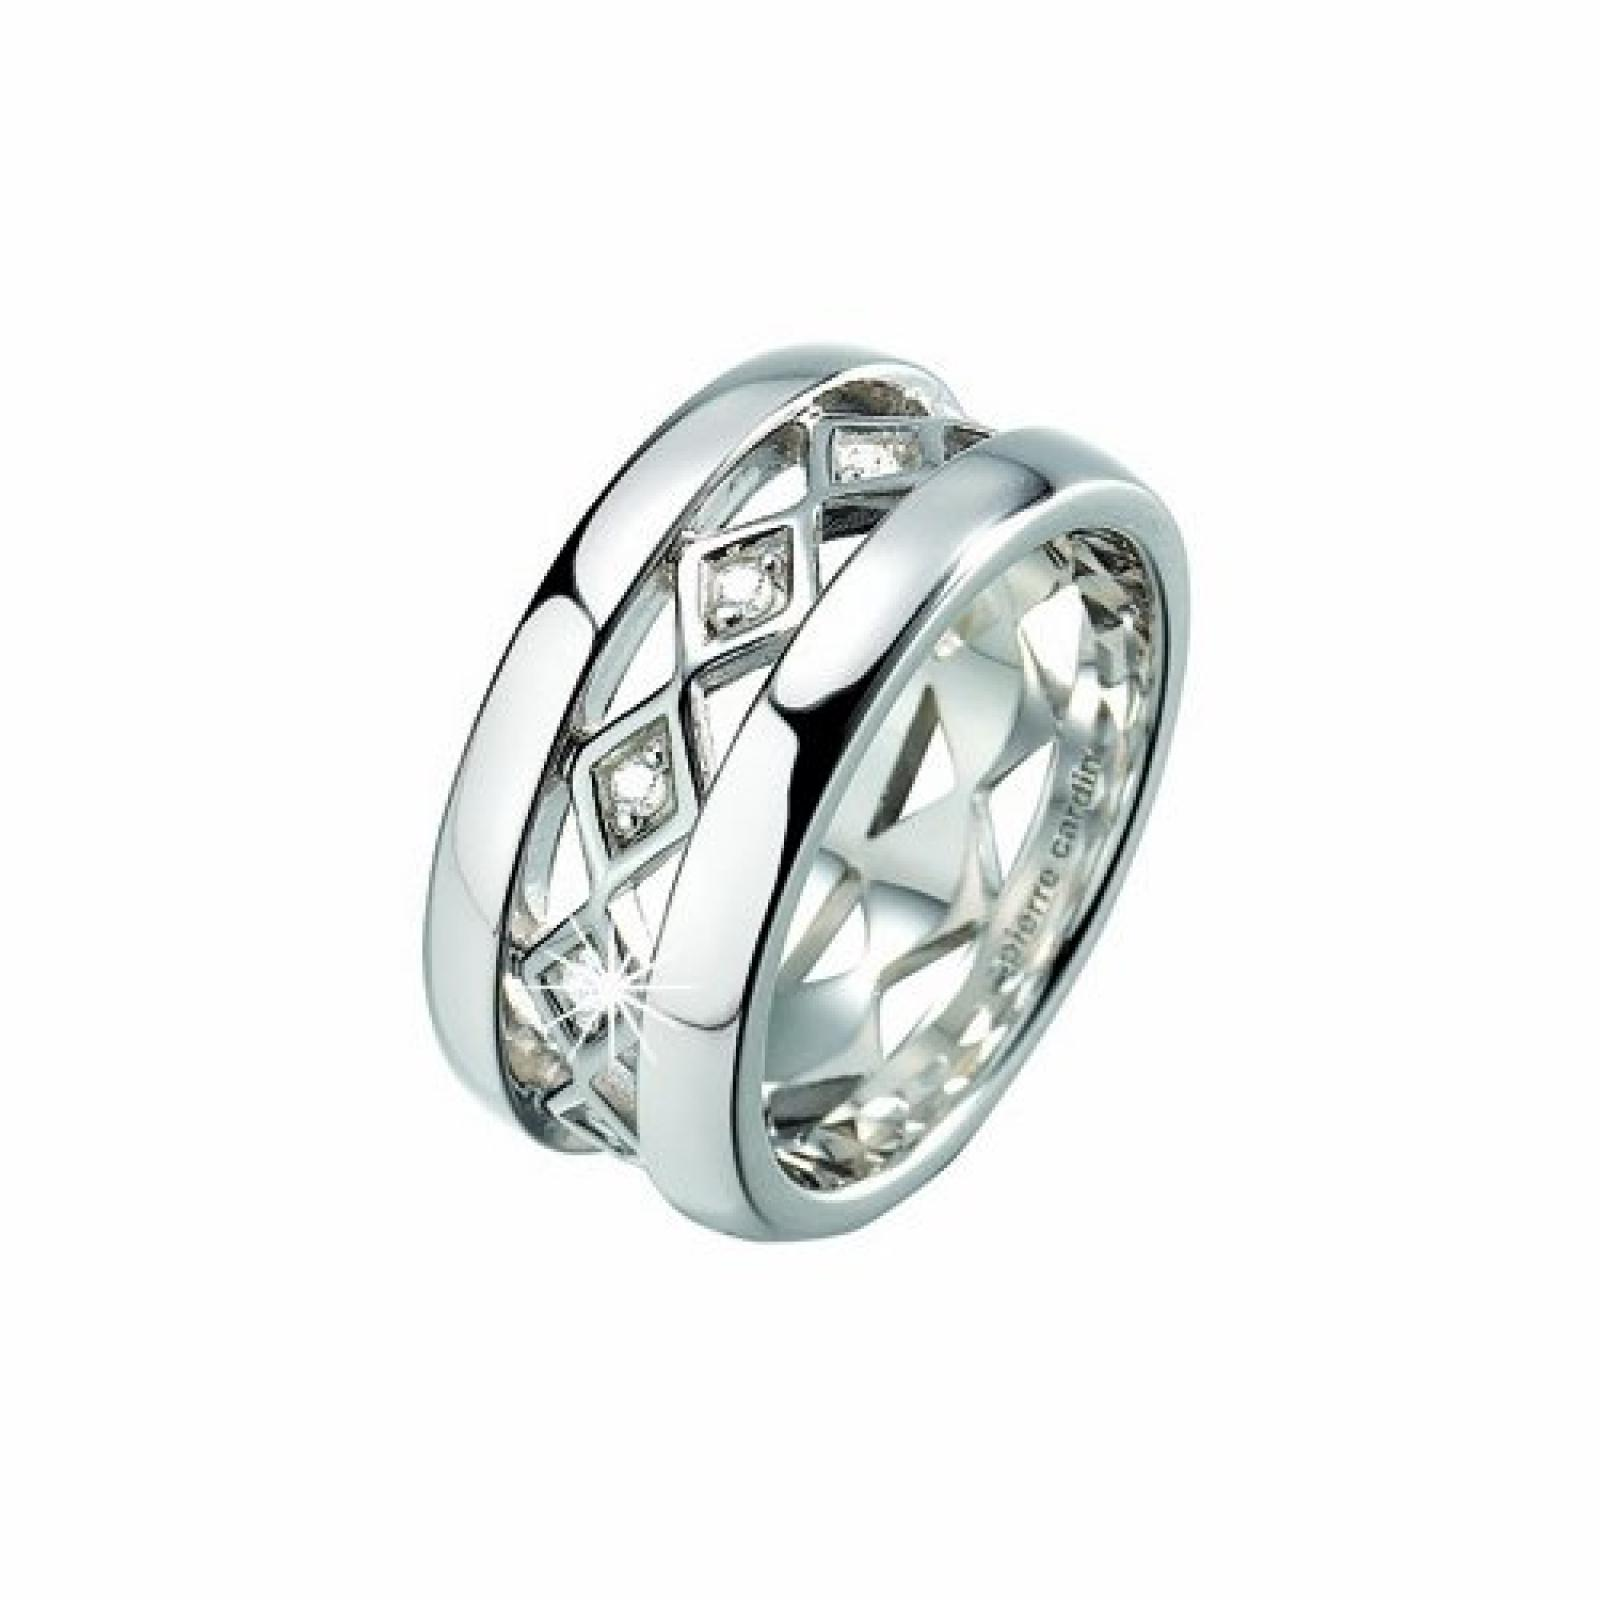 Pierre Cardin Damen-Ring Douceur Sterling-Silber 925 PCRG90286A